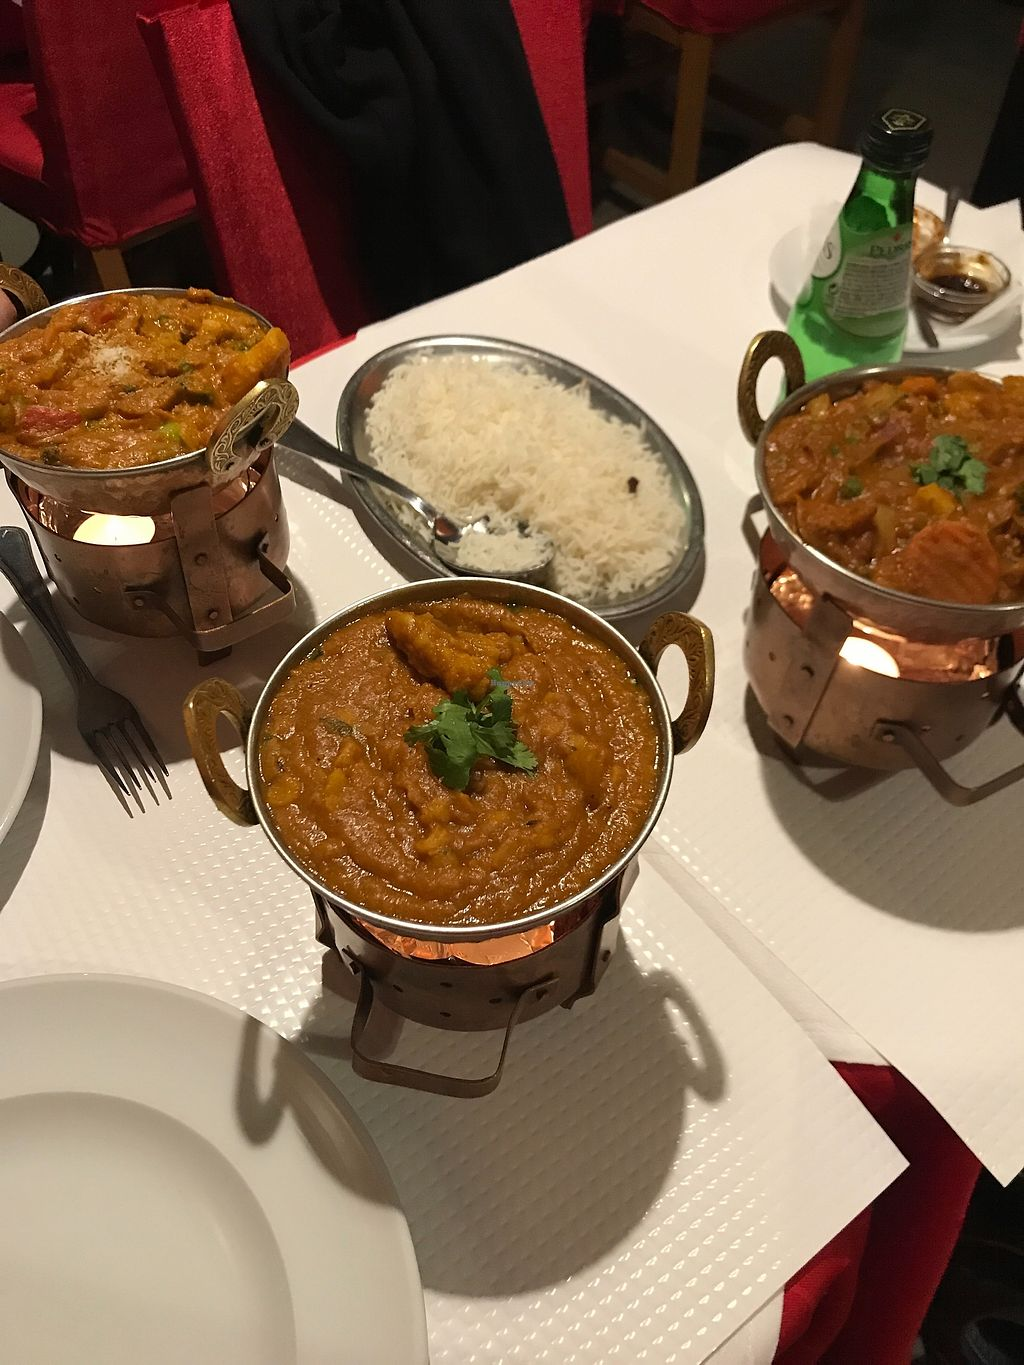 """Photo of Sanskar Nepal  by <a href=""""/members/profile/TineH"""">TineH</a> <br/>Just delicious!! <br/> September 25, 2017  - <a href='/contact/abuse/image/95207/308398'>Report</a>"""